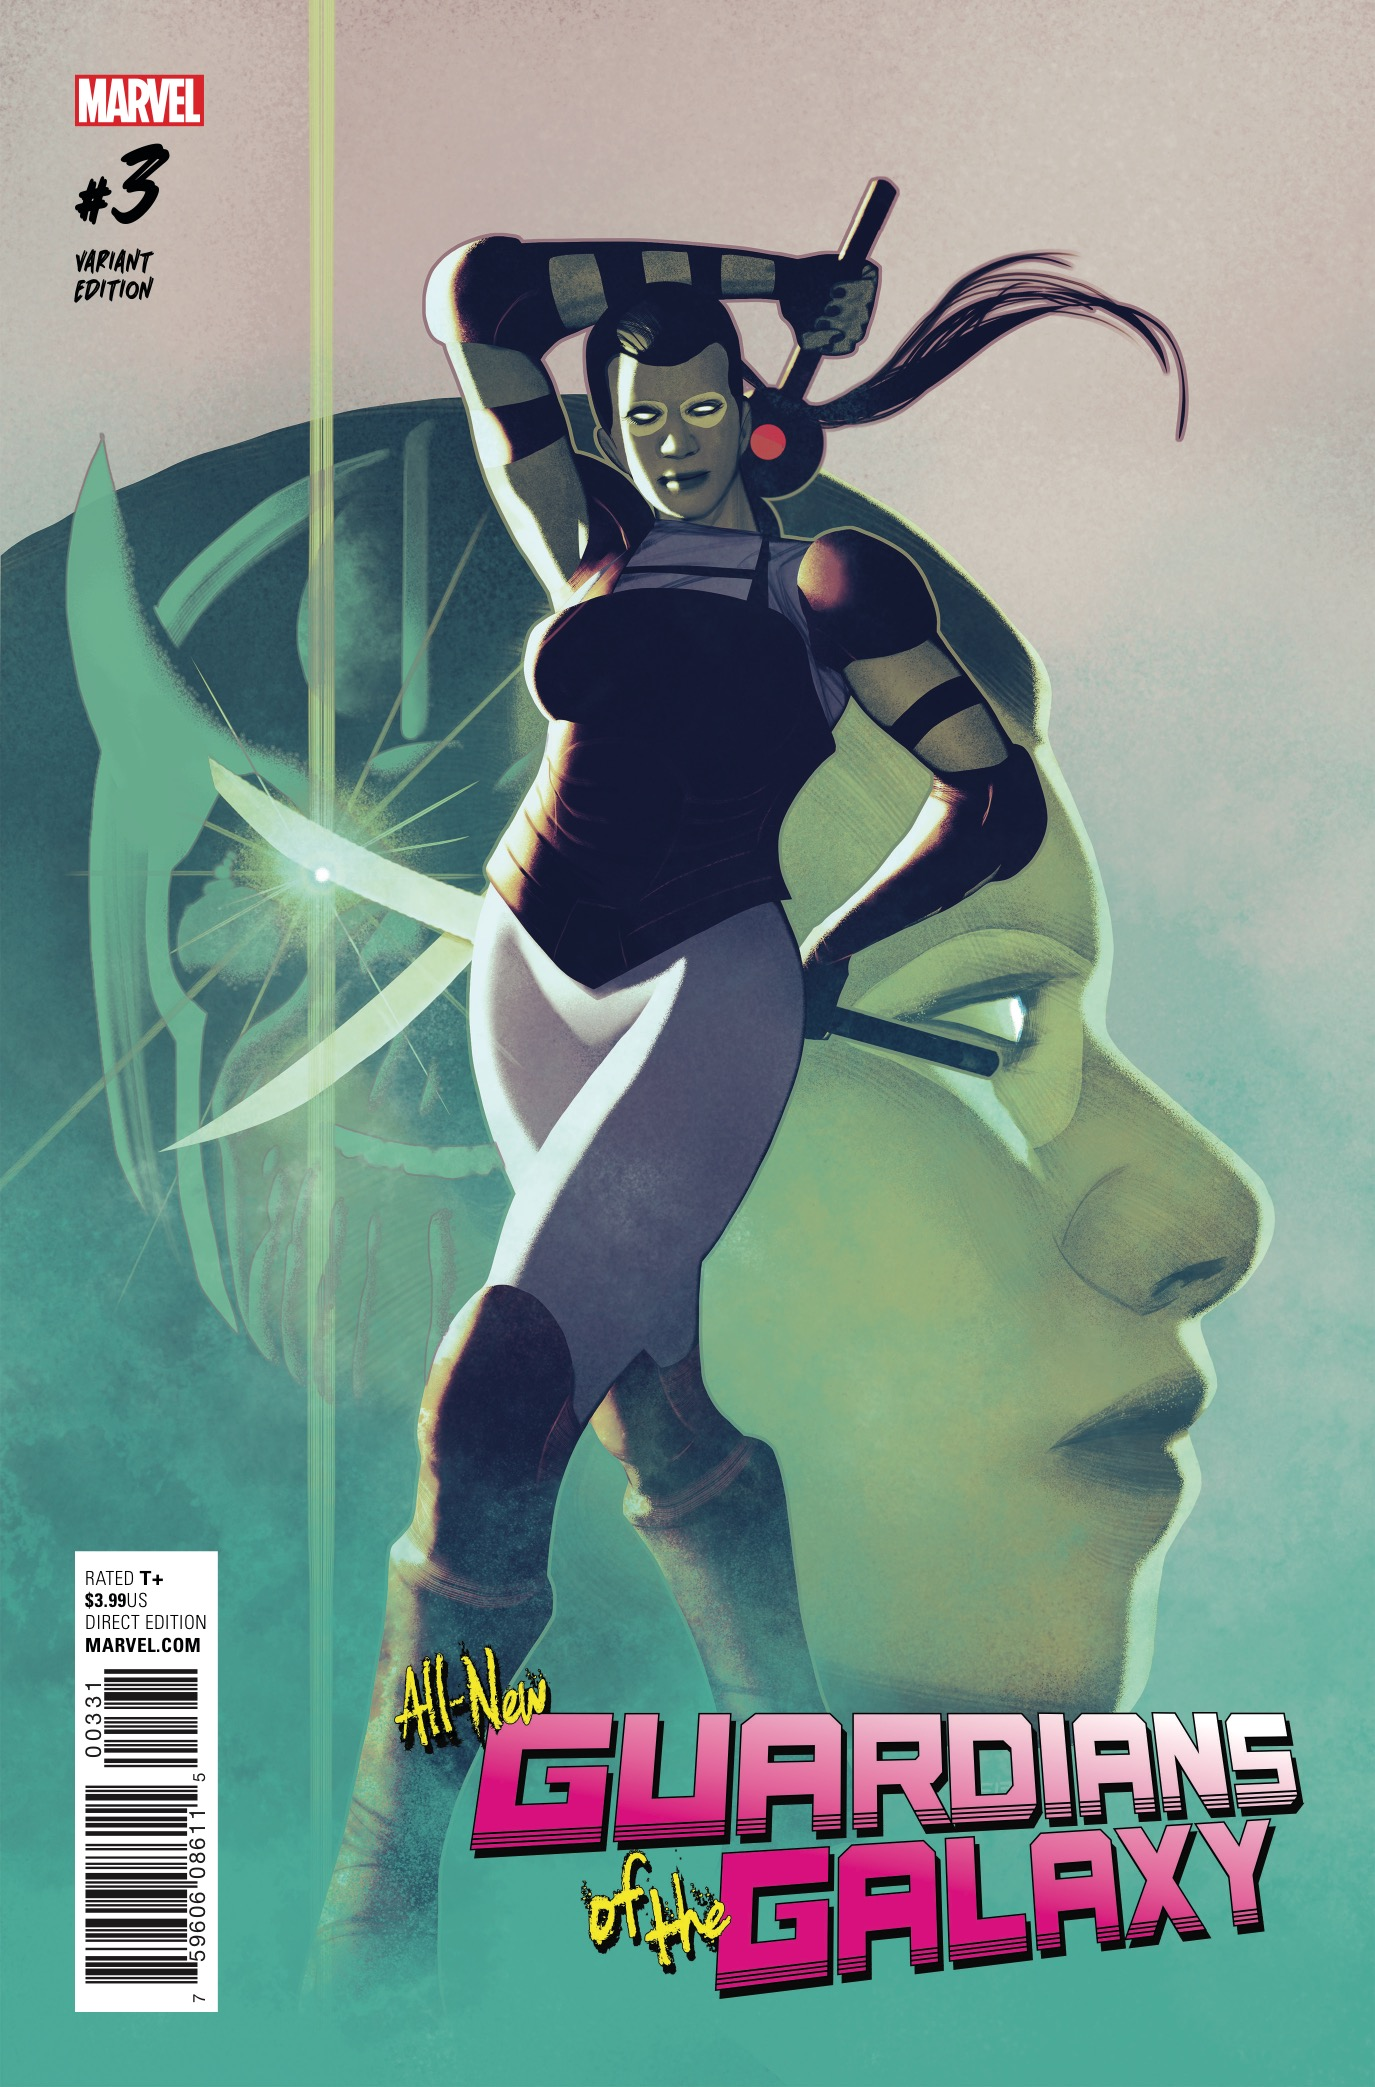 All-New Guardians of the Galaxy #3 Review